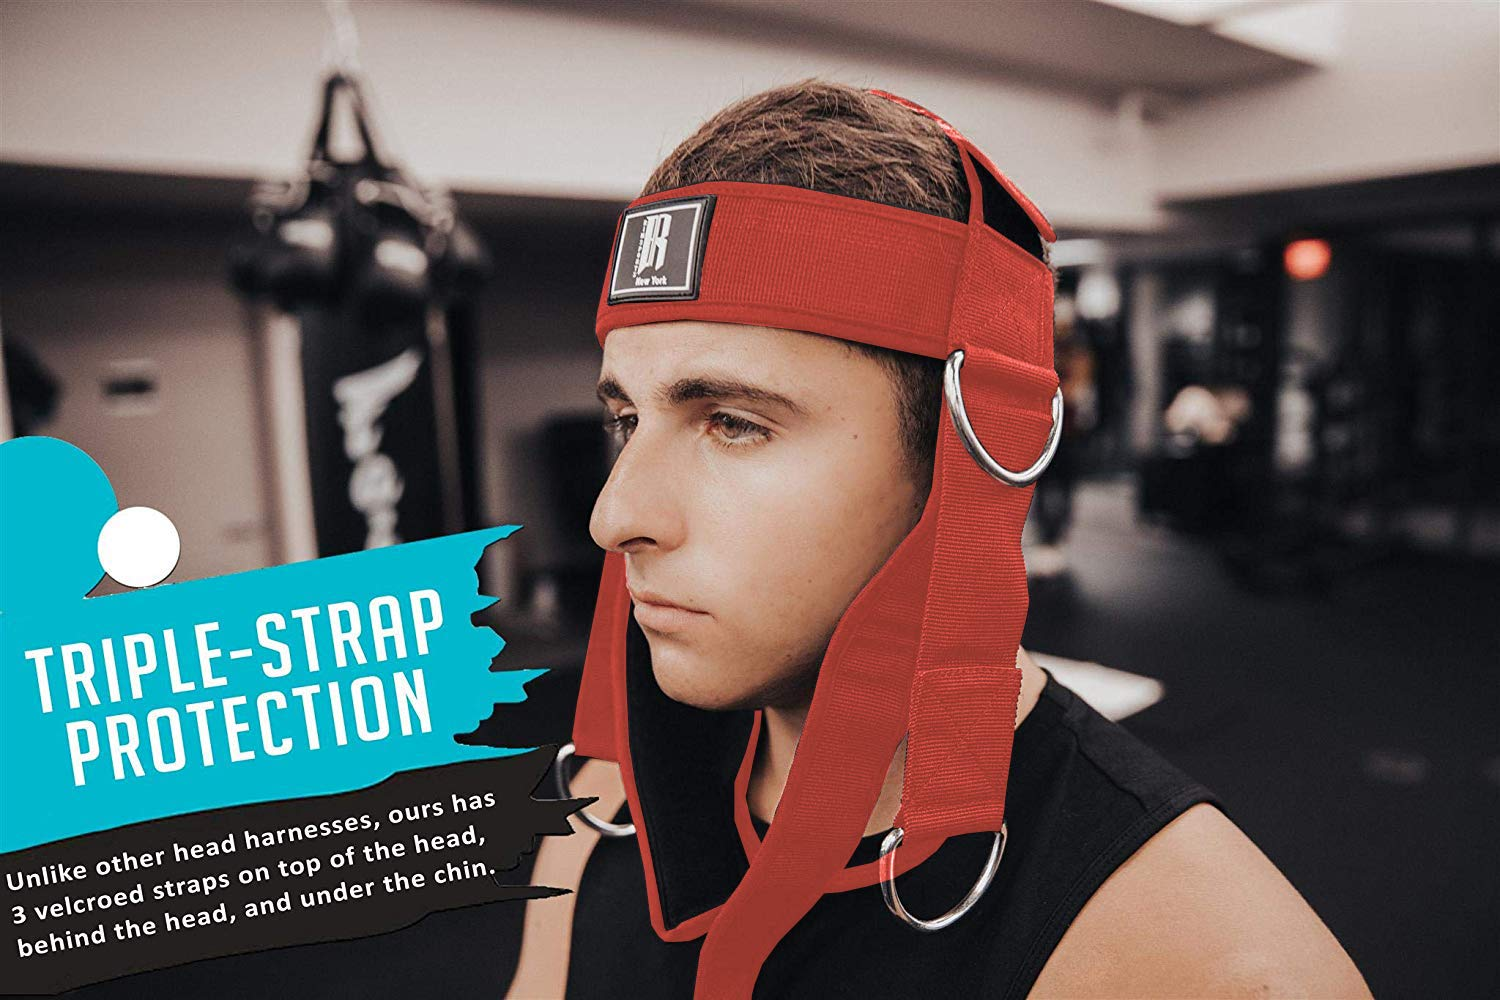 Red Premium Neck Curl Harness /& Head Harness Neck for Weightlifting Ideal Neck Strap for Men /& Women RIMSports Head Harness Neck Support Best Neck Exerciser for Lifting